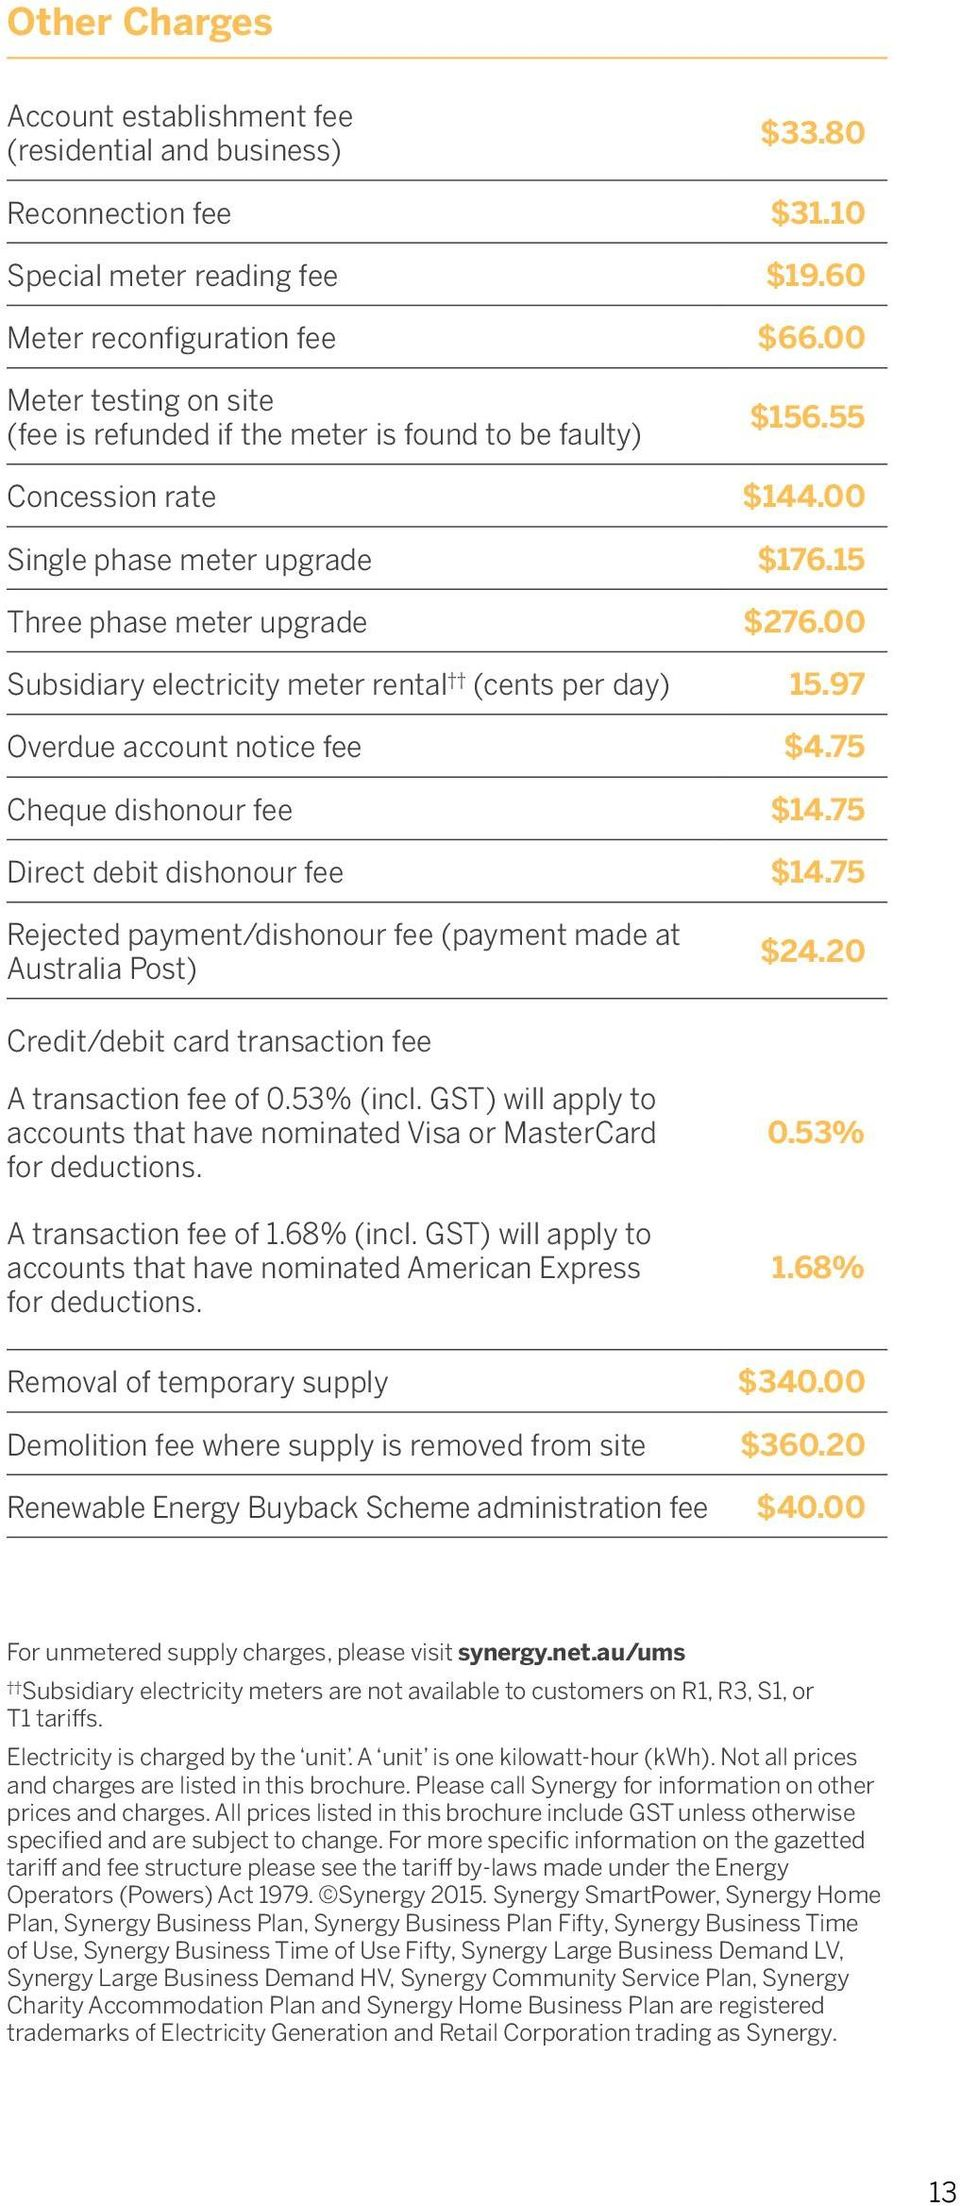 00 Subsidiary electricity meter rental (cents per day) 15.97 Overdue account notice fee $4.75 Cheque dishonour fee $14.75 Direct debit dishonour fee $14.